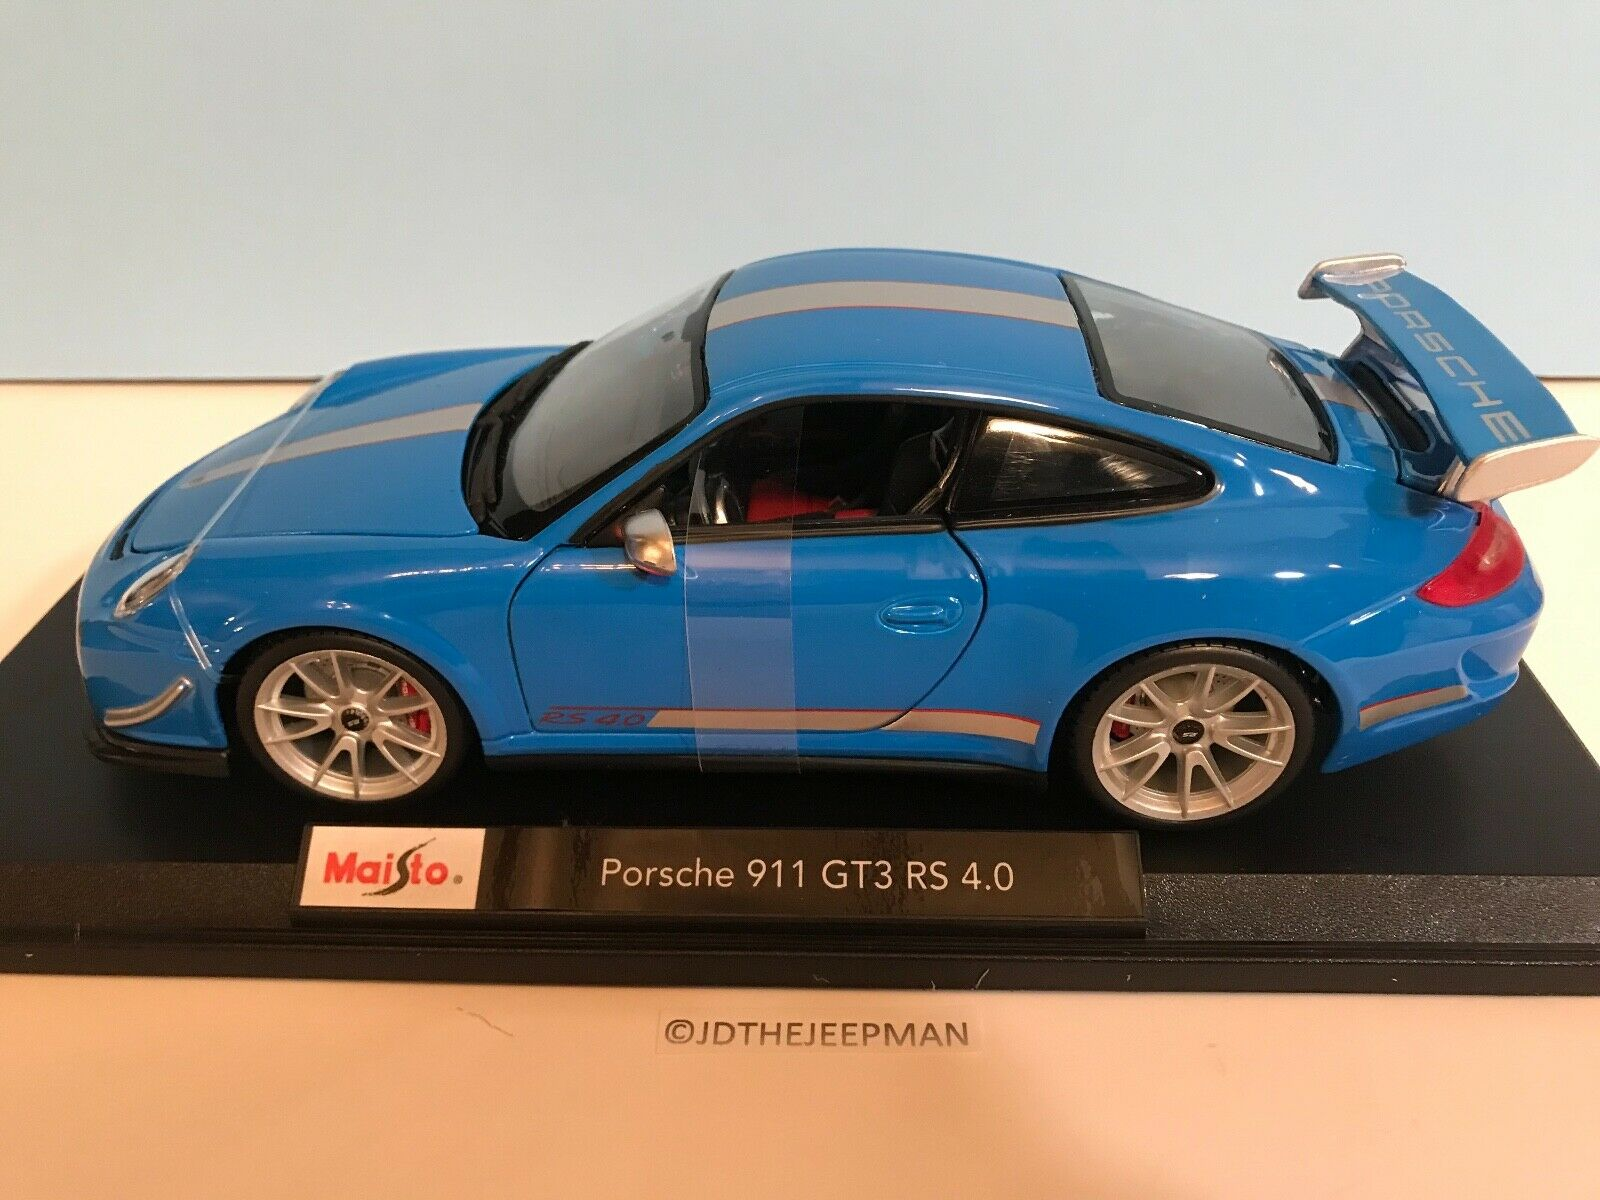 Maisto Porsche 911 Gt3 Rs 4 0 Special Edition 2020 New Release 1 18 31703 For Sale Online